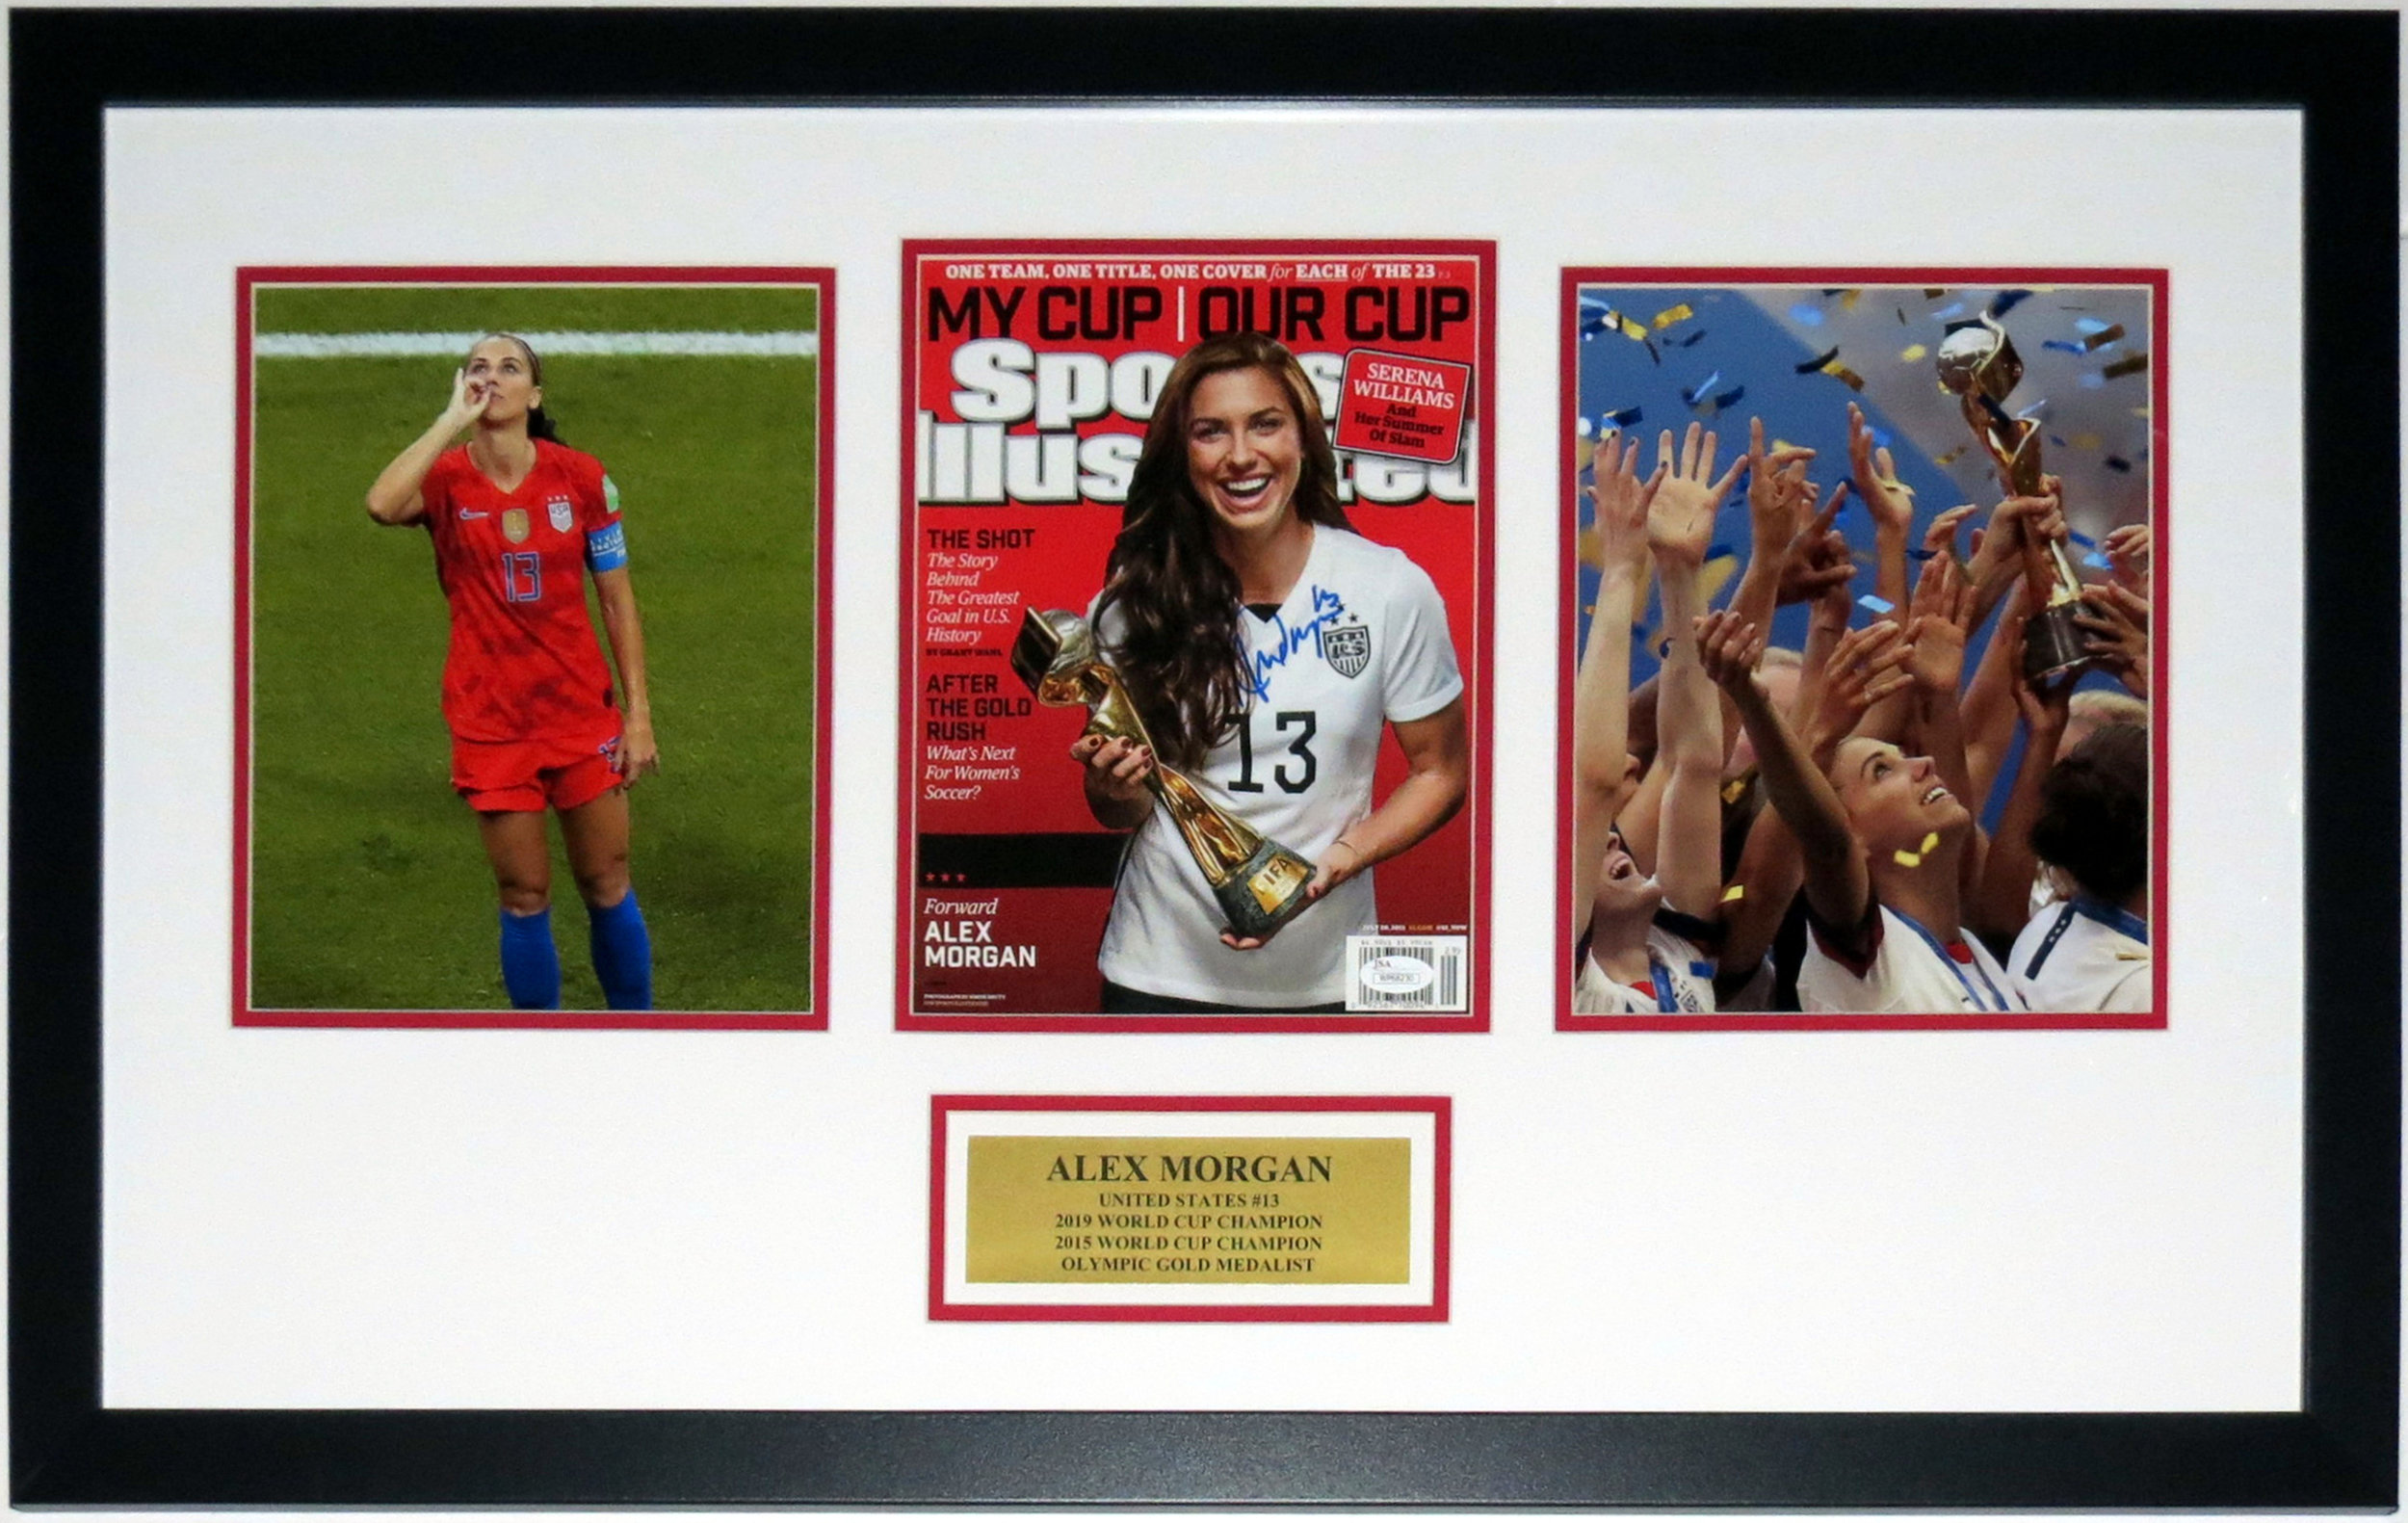 Alex Morgan Signed Team USA 2019 World Cup Champions 8x10 Photo Compilation - JSA COA Authenticated- Professionally Framed & Plate